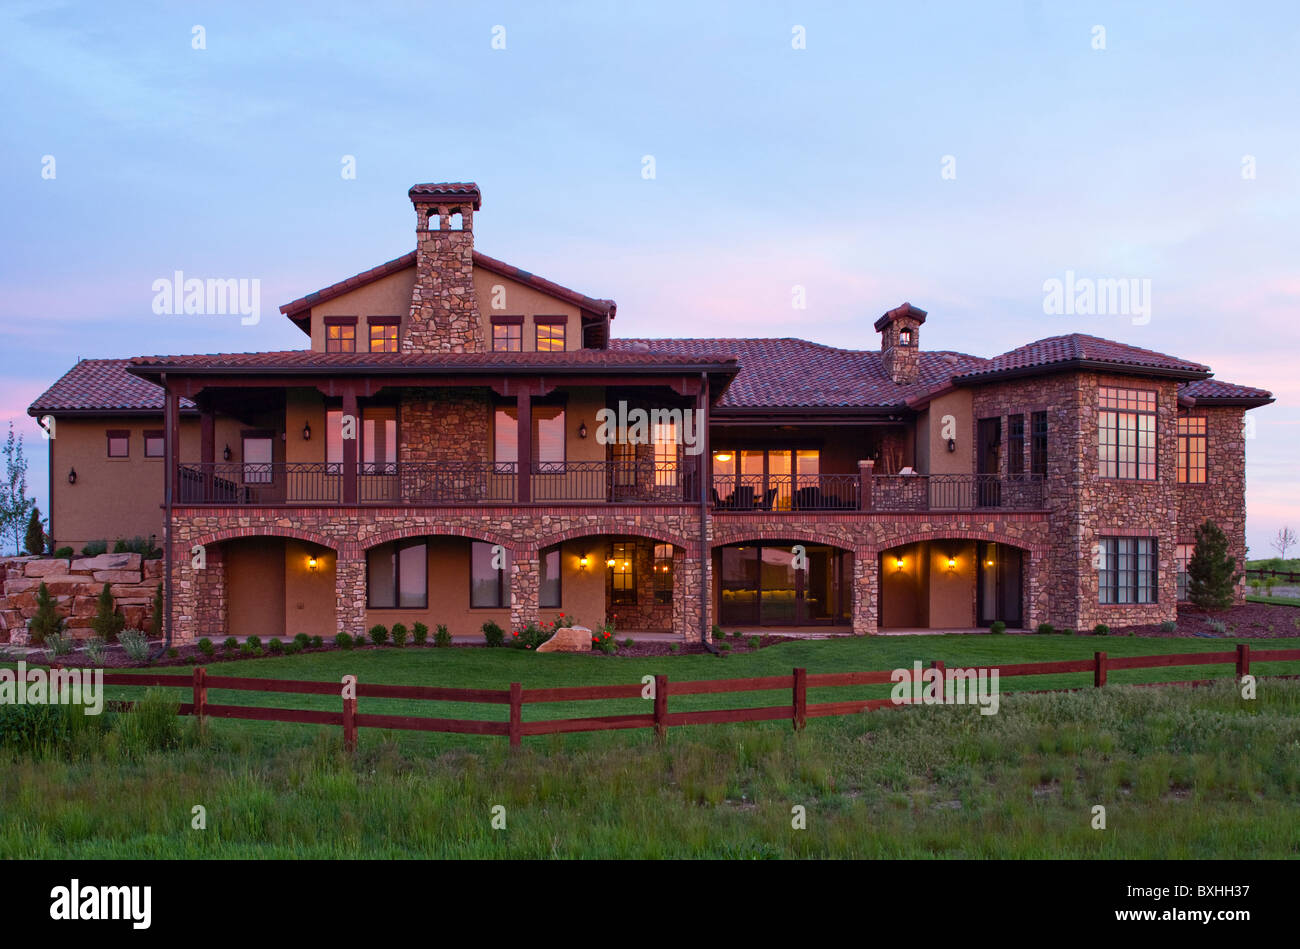 Rear View Of Colorado Luxury Home At Sunrise Built By Brannen - Colorado luxury homes